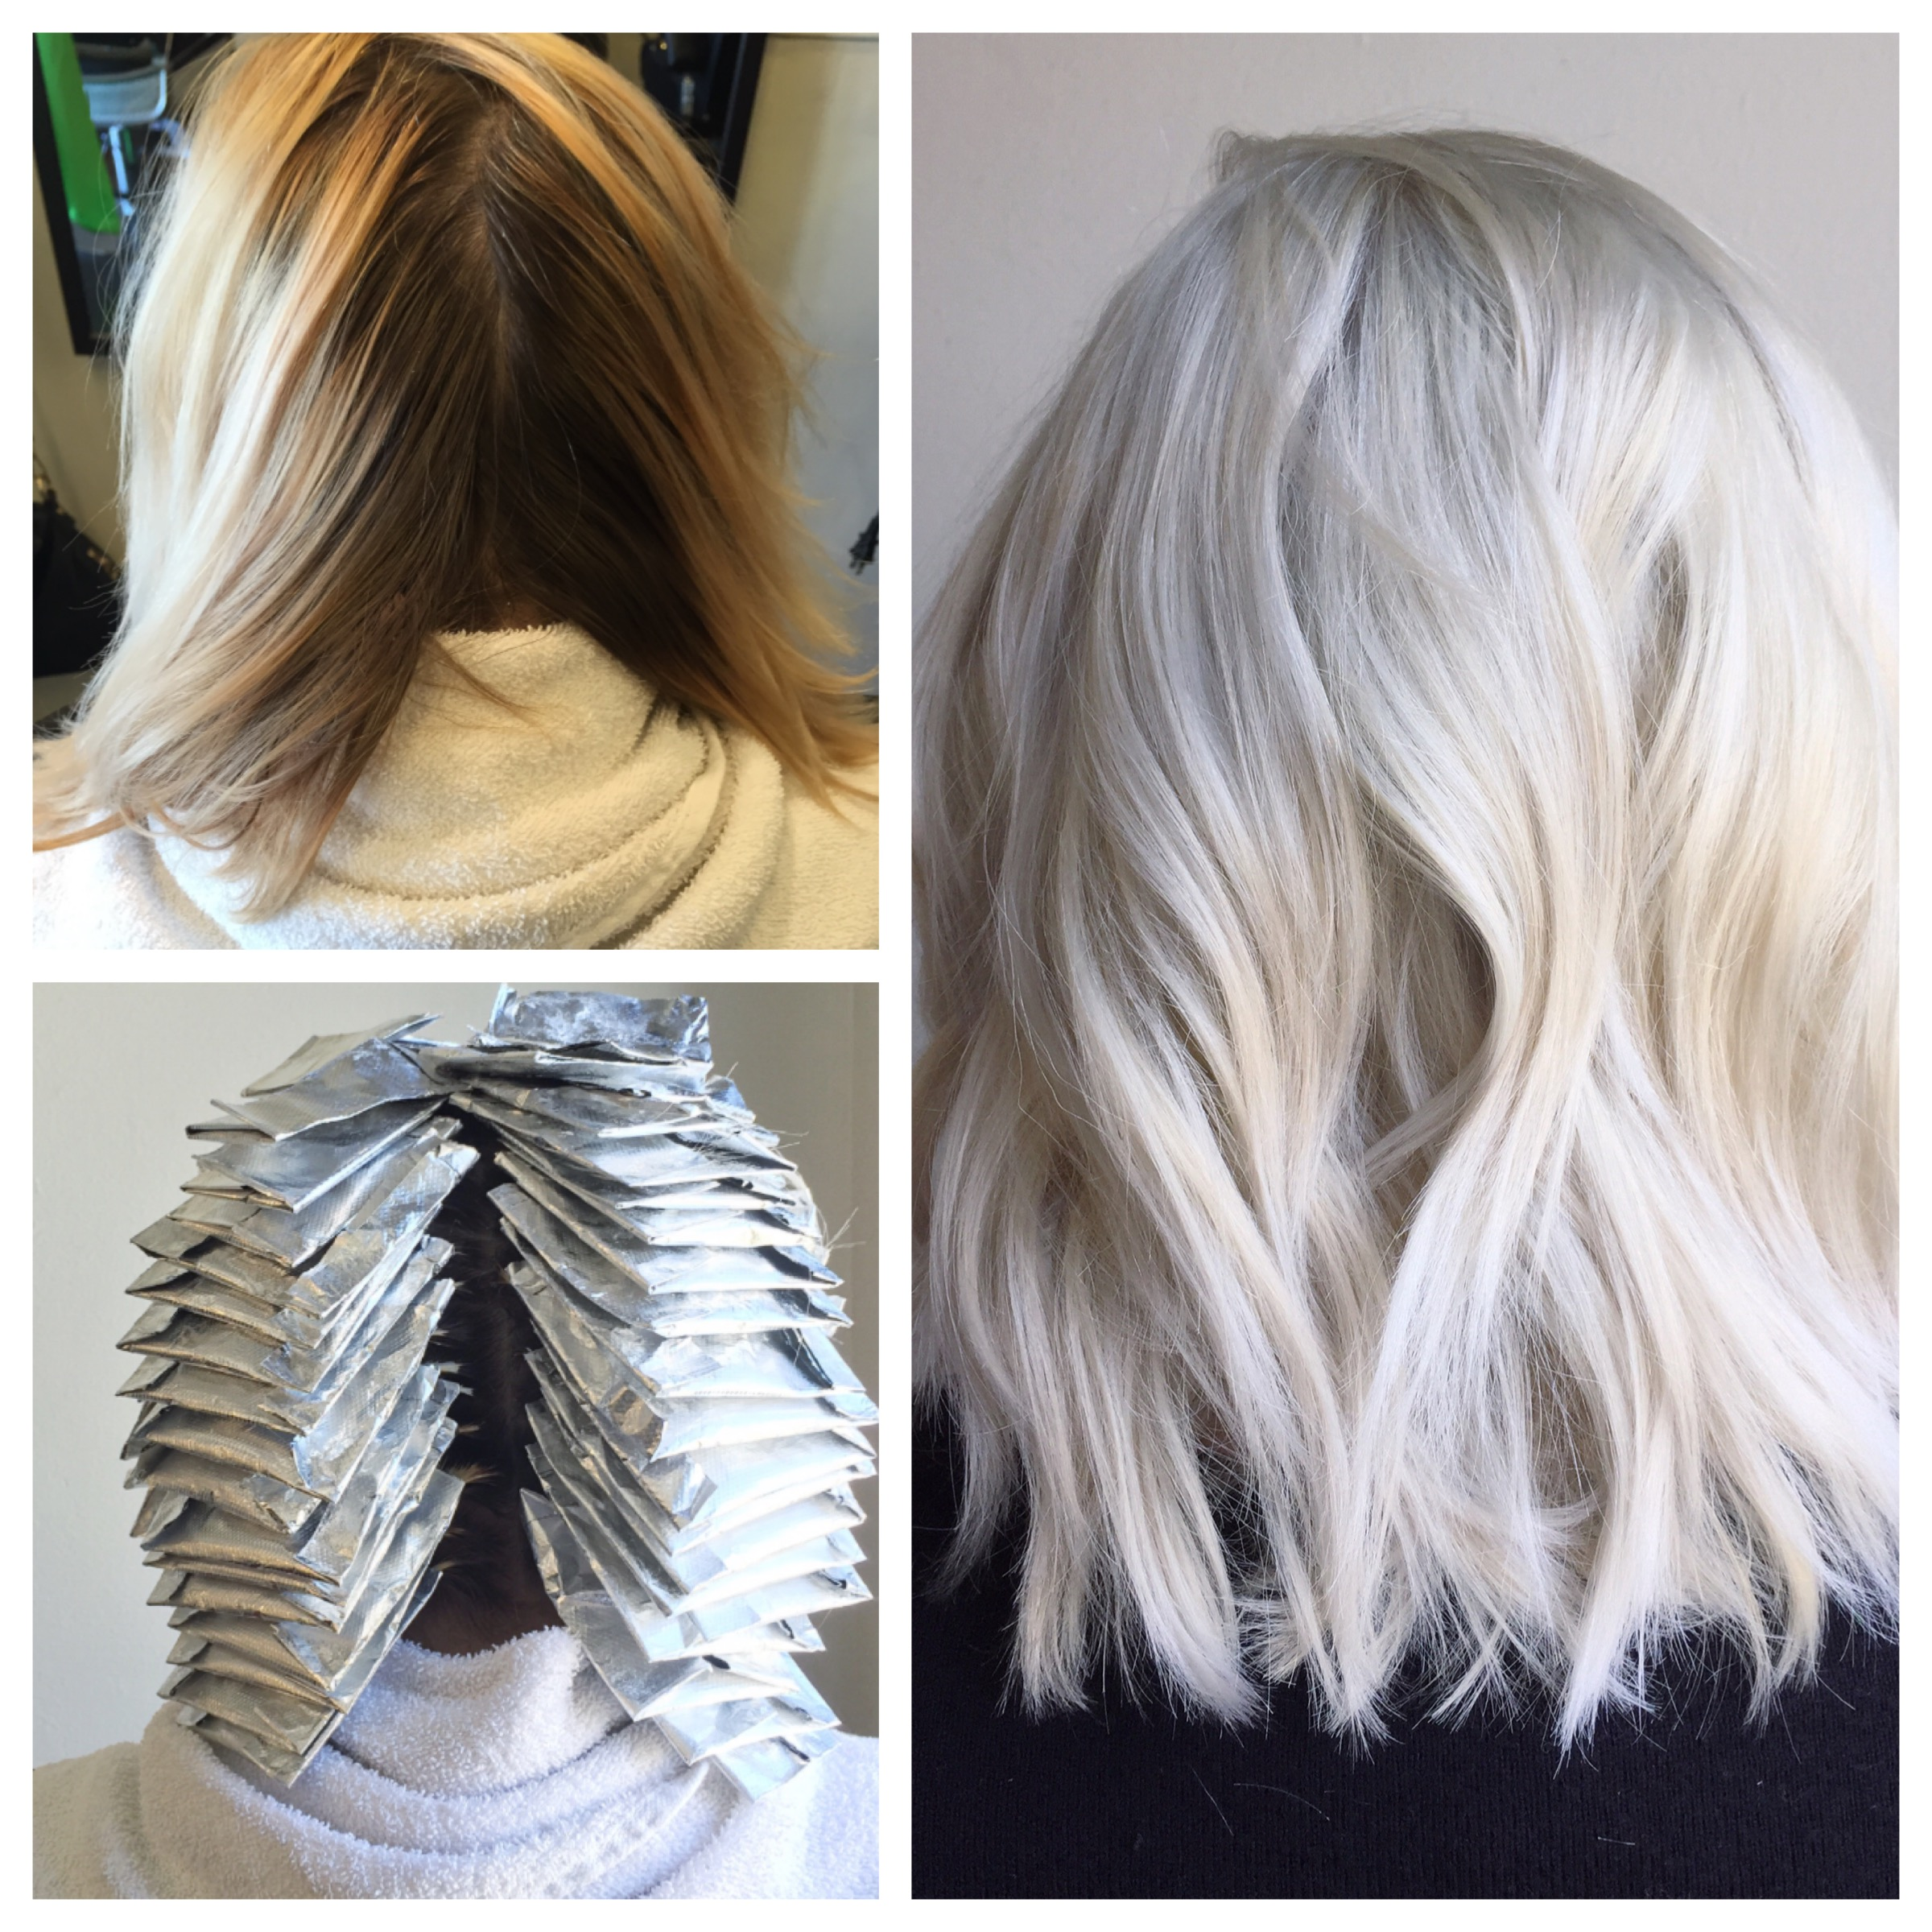 TRANSFORMATION: From Box To Balayage Blonde To Platinum